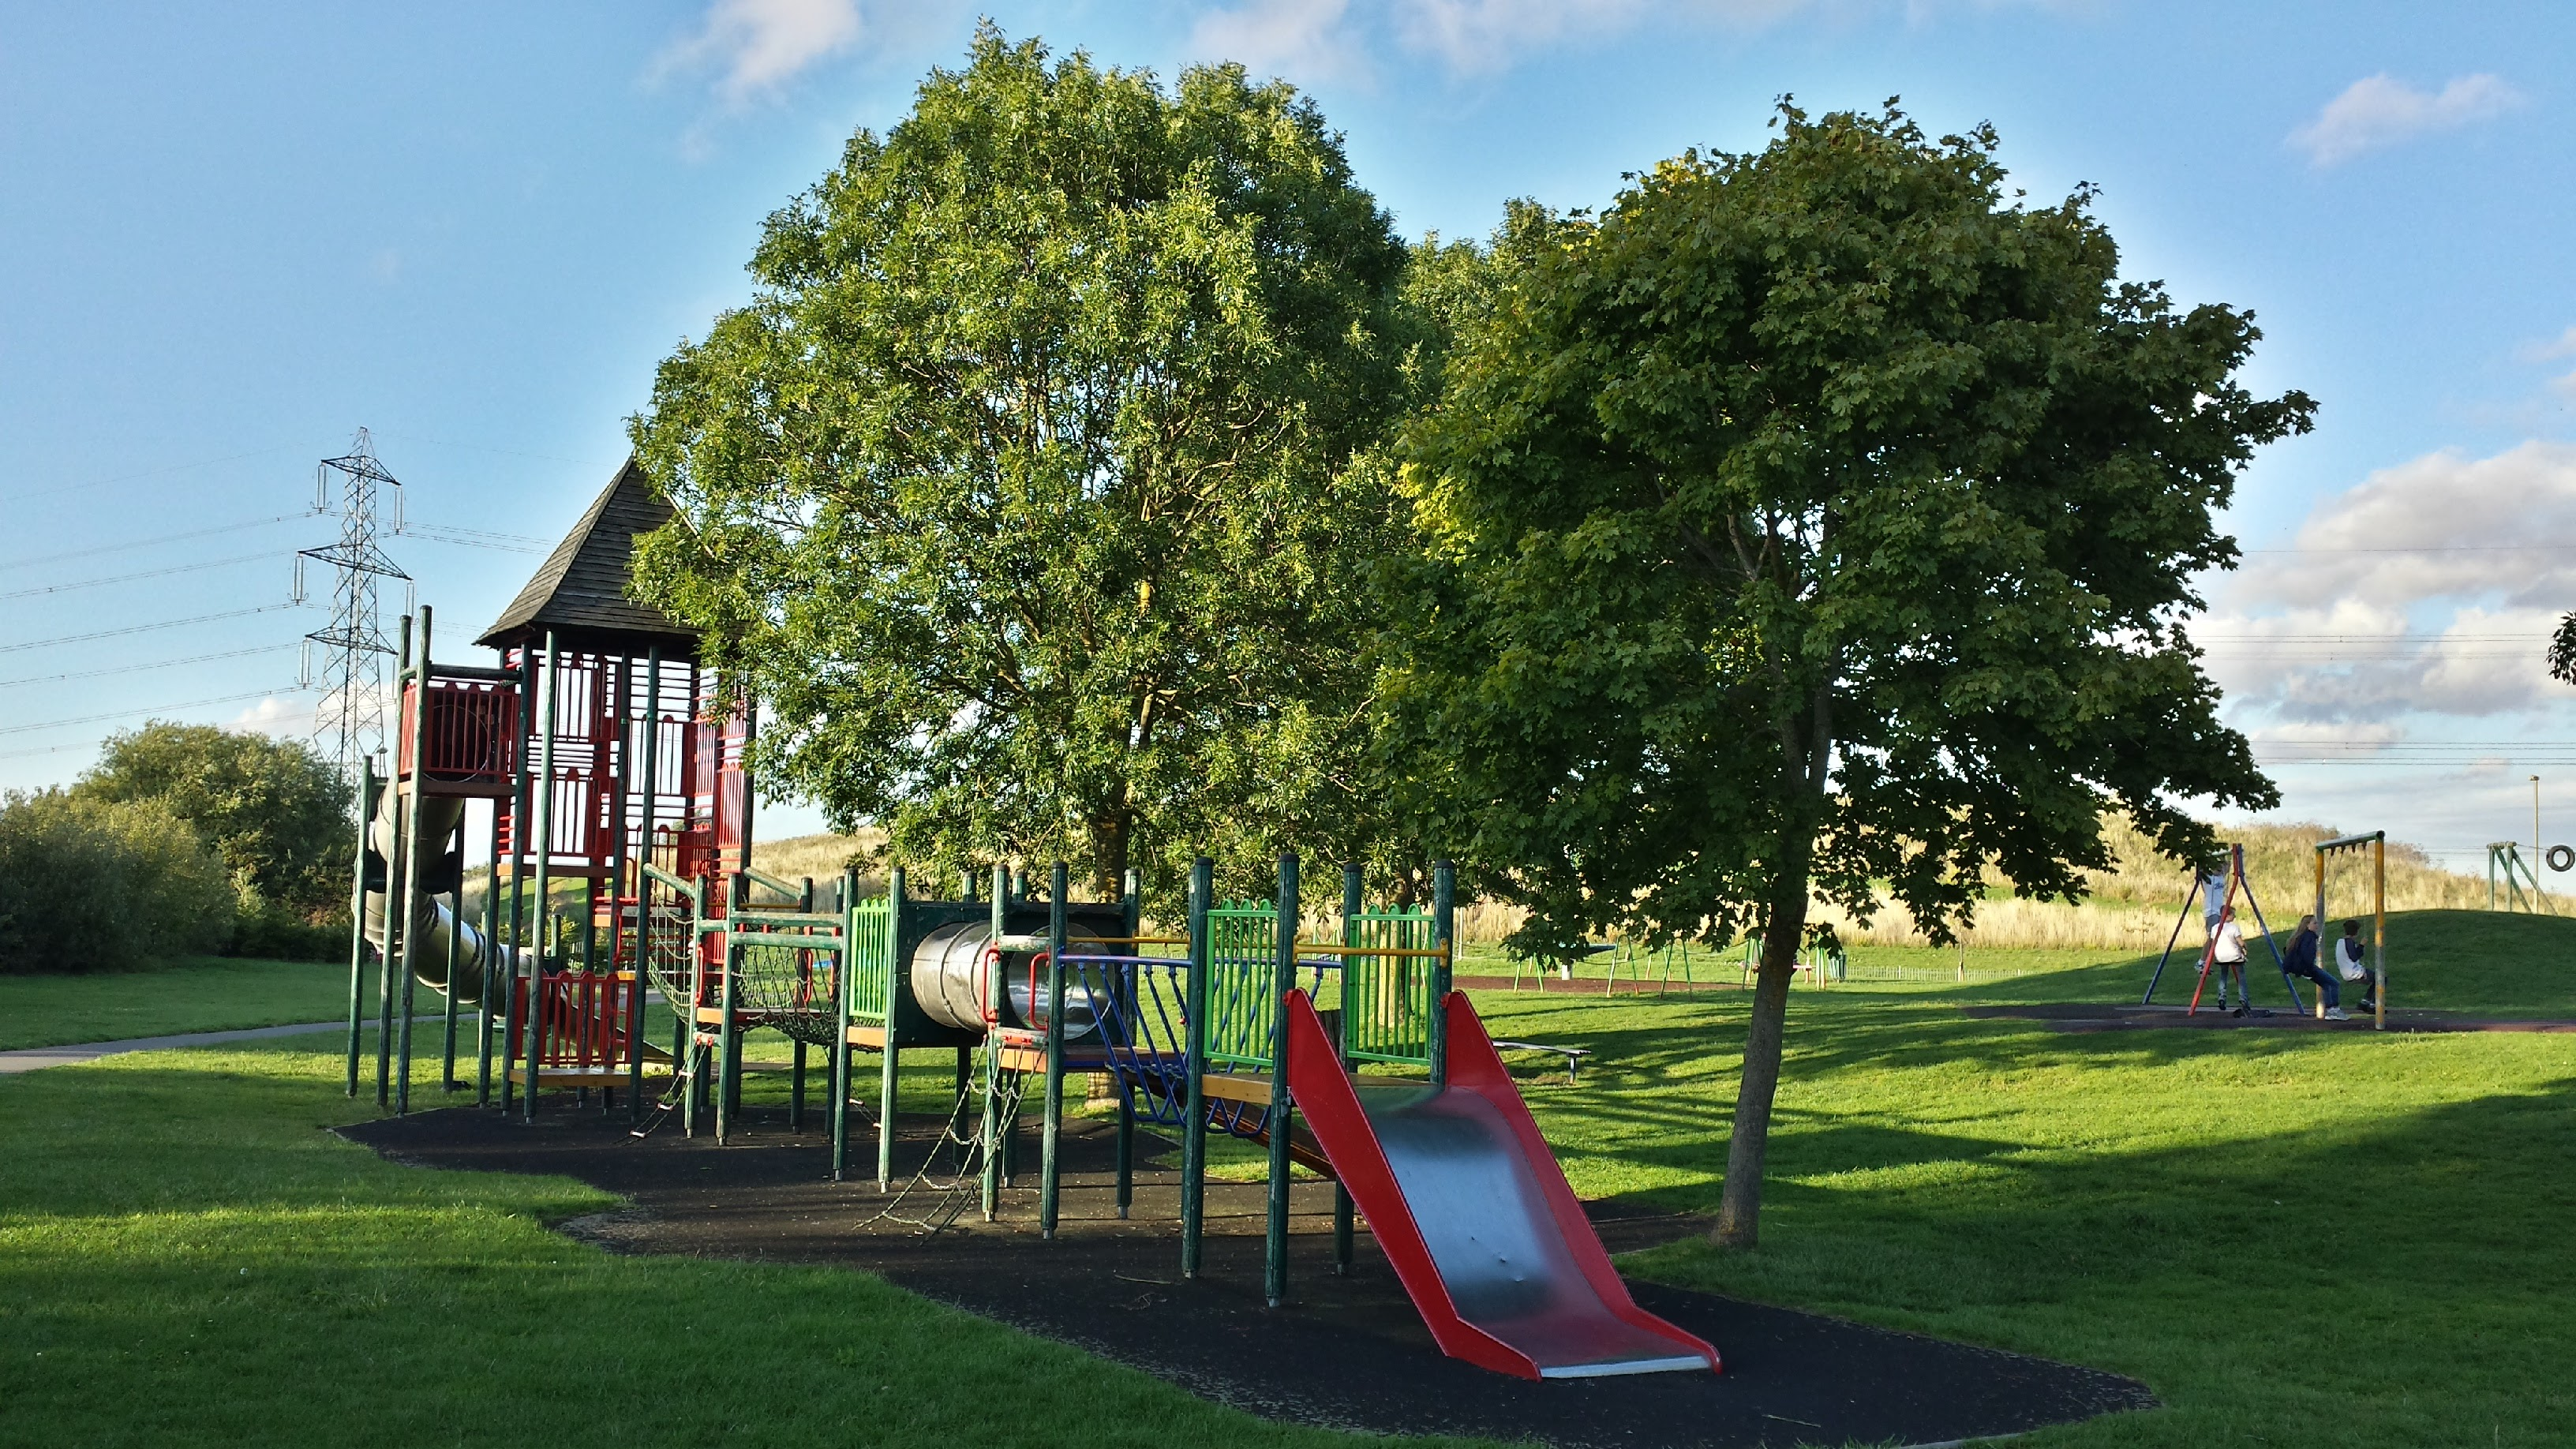 Ladygrove Park and Playground